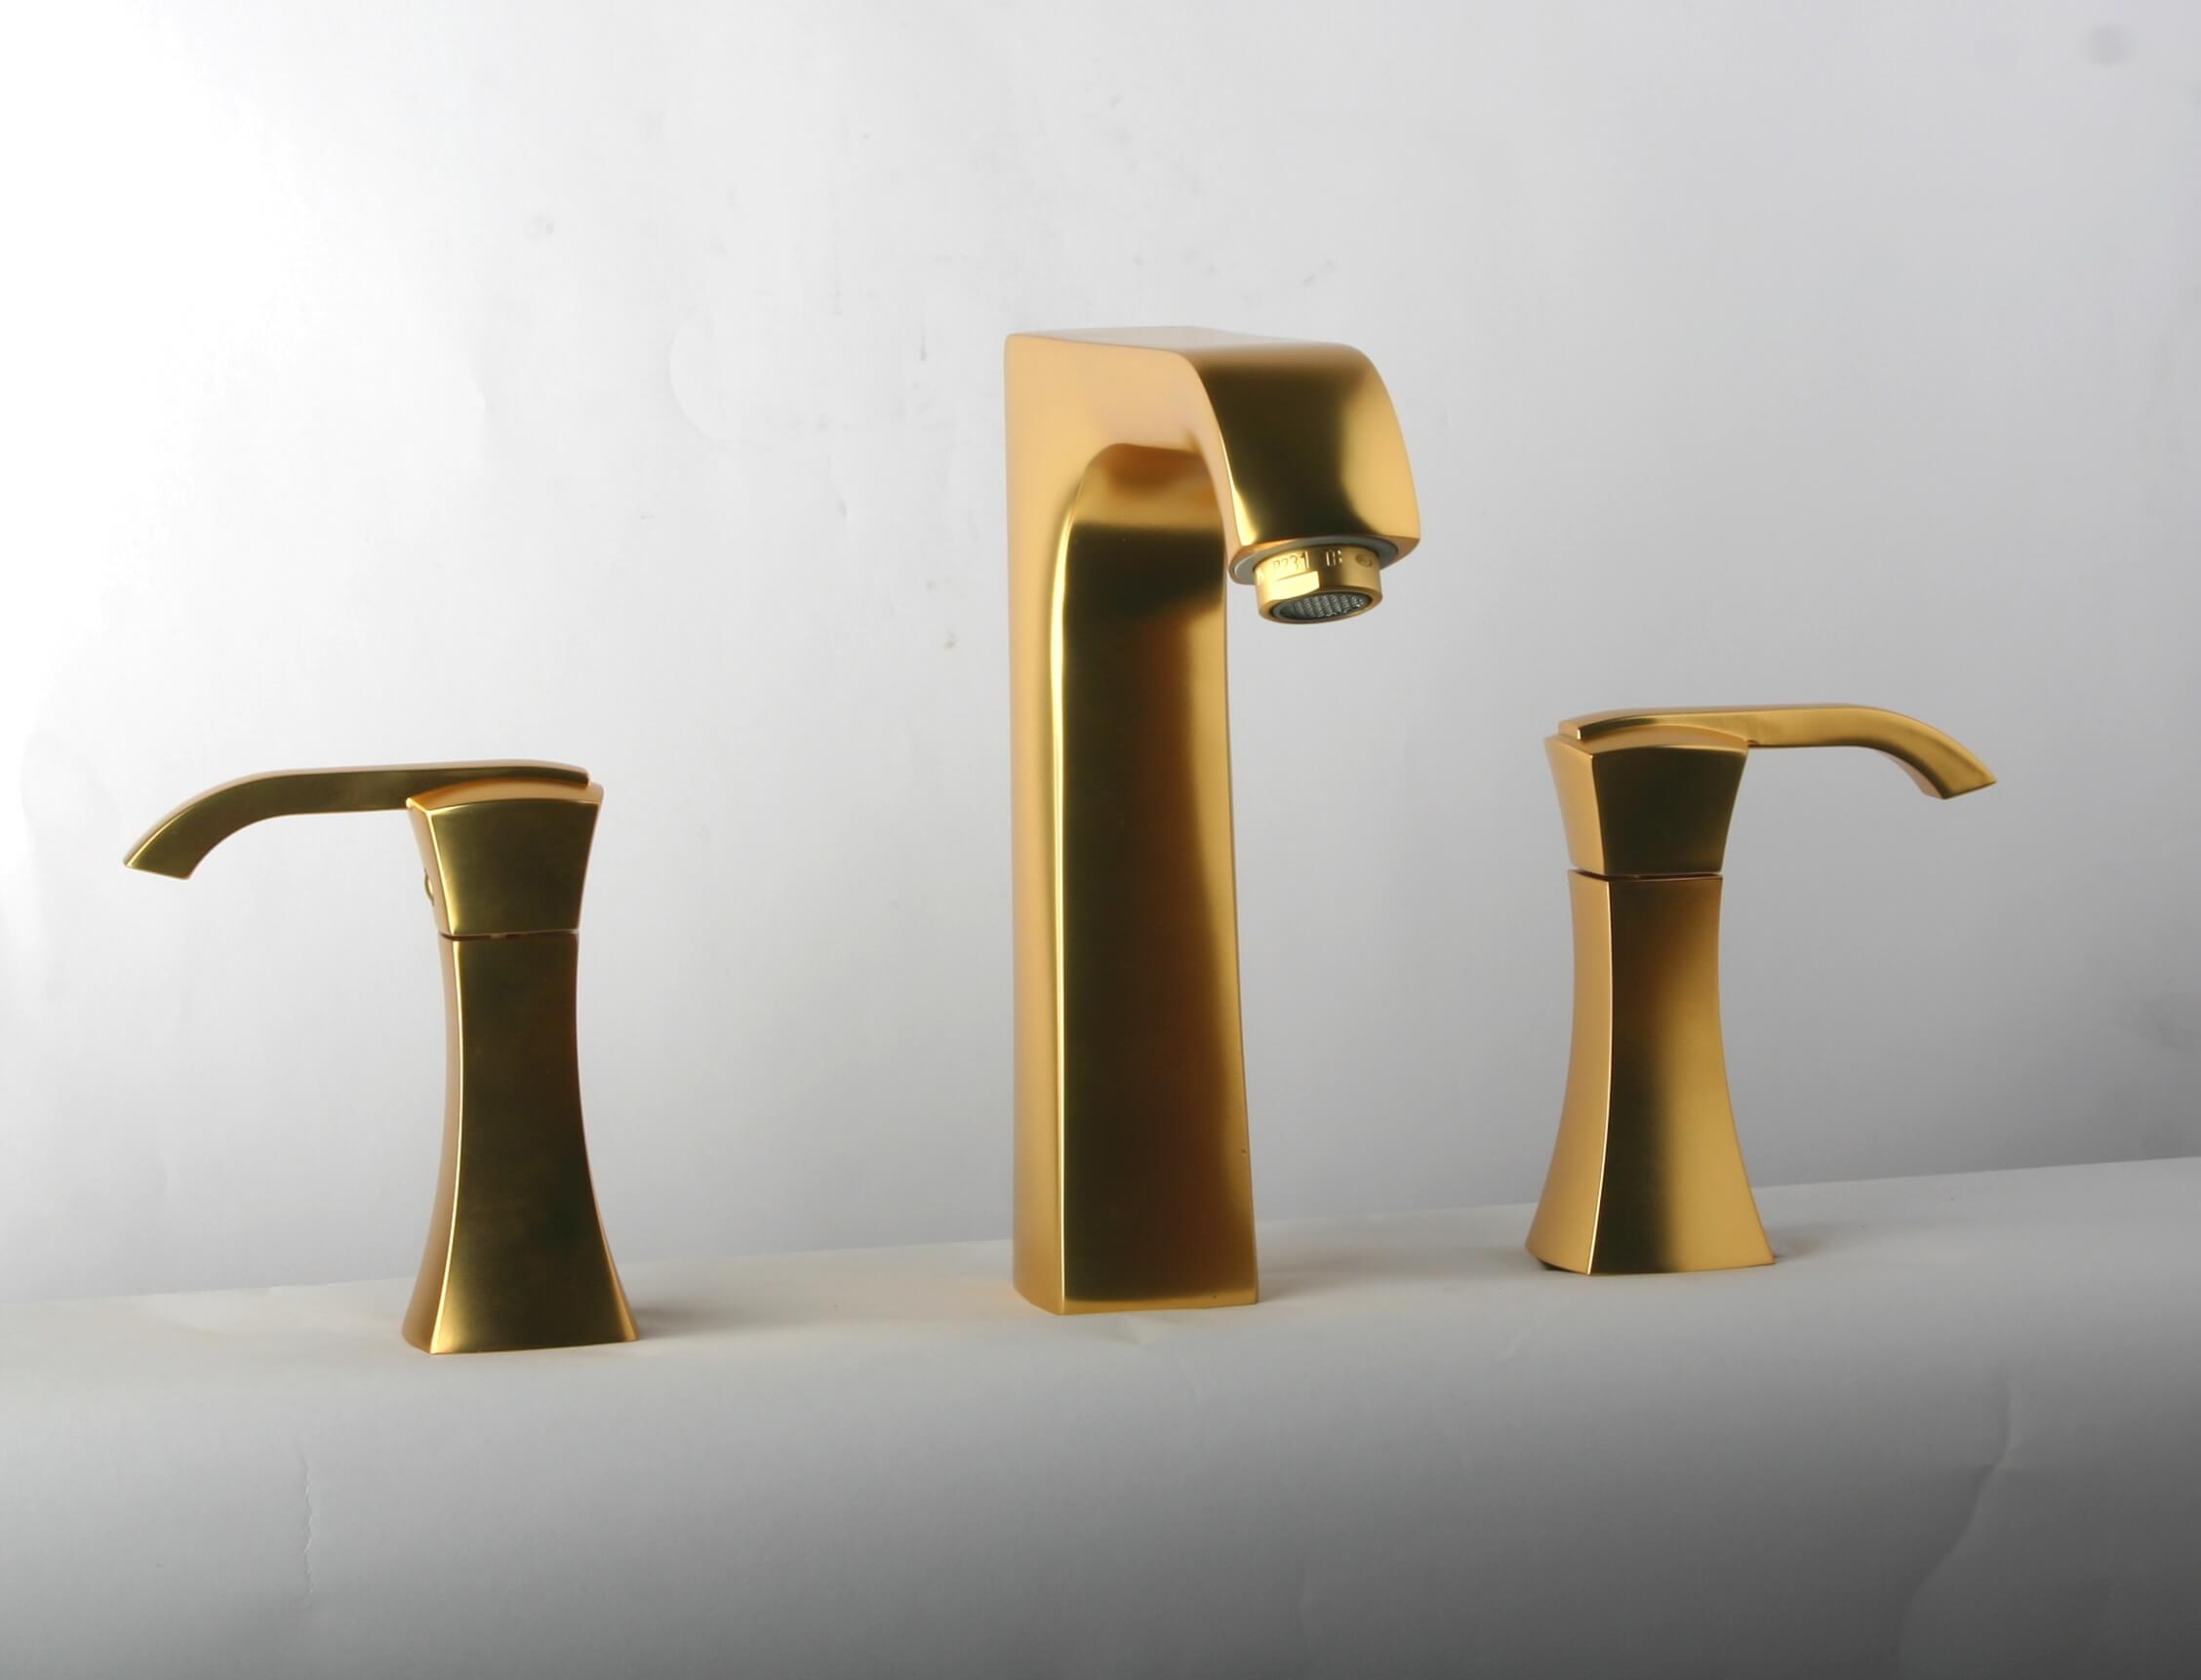 LaToscana by Paini Bathroom Faucets - Lady 89OK214 Widespread Faucet - Satin Gold